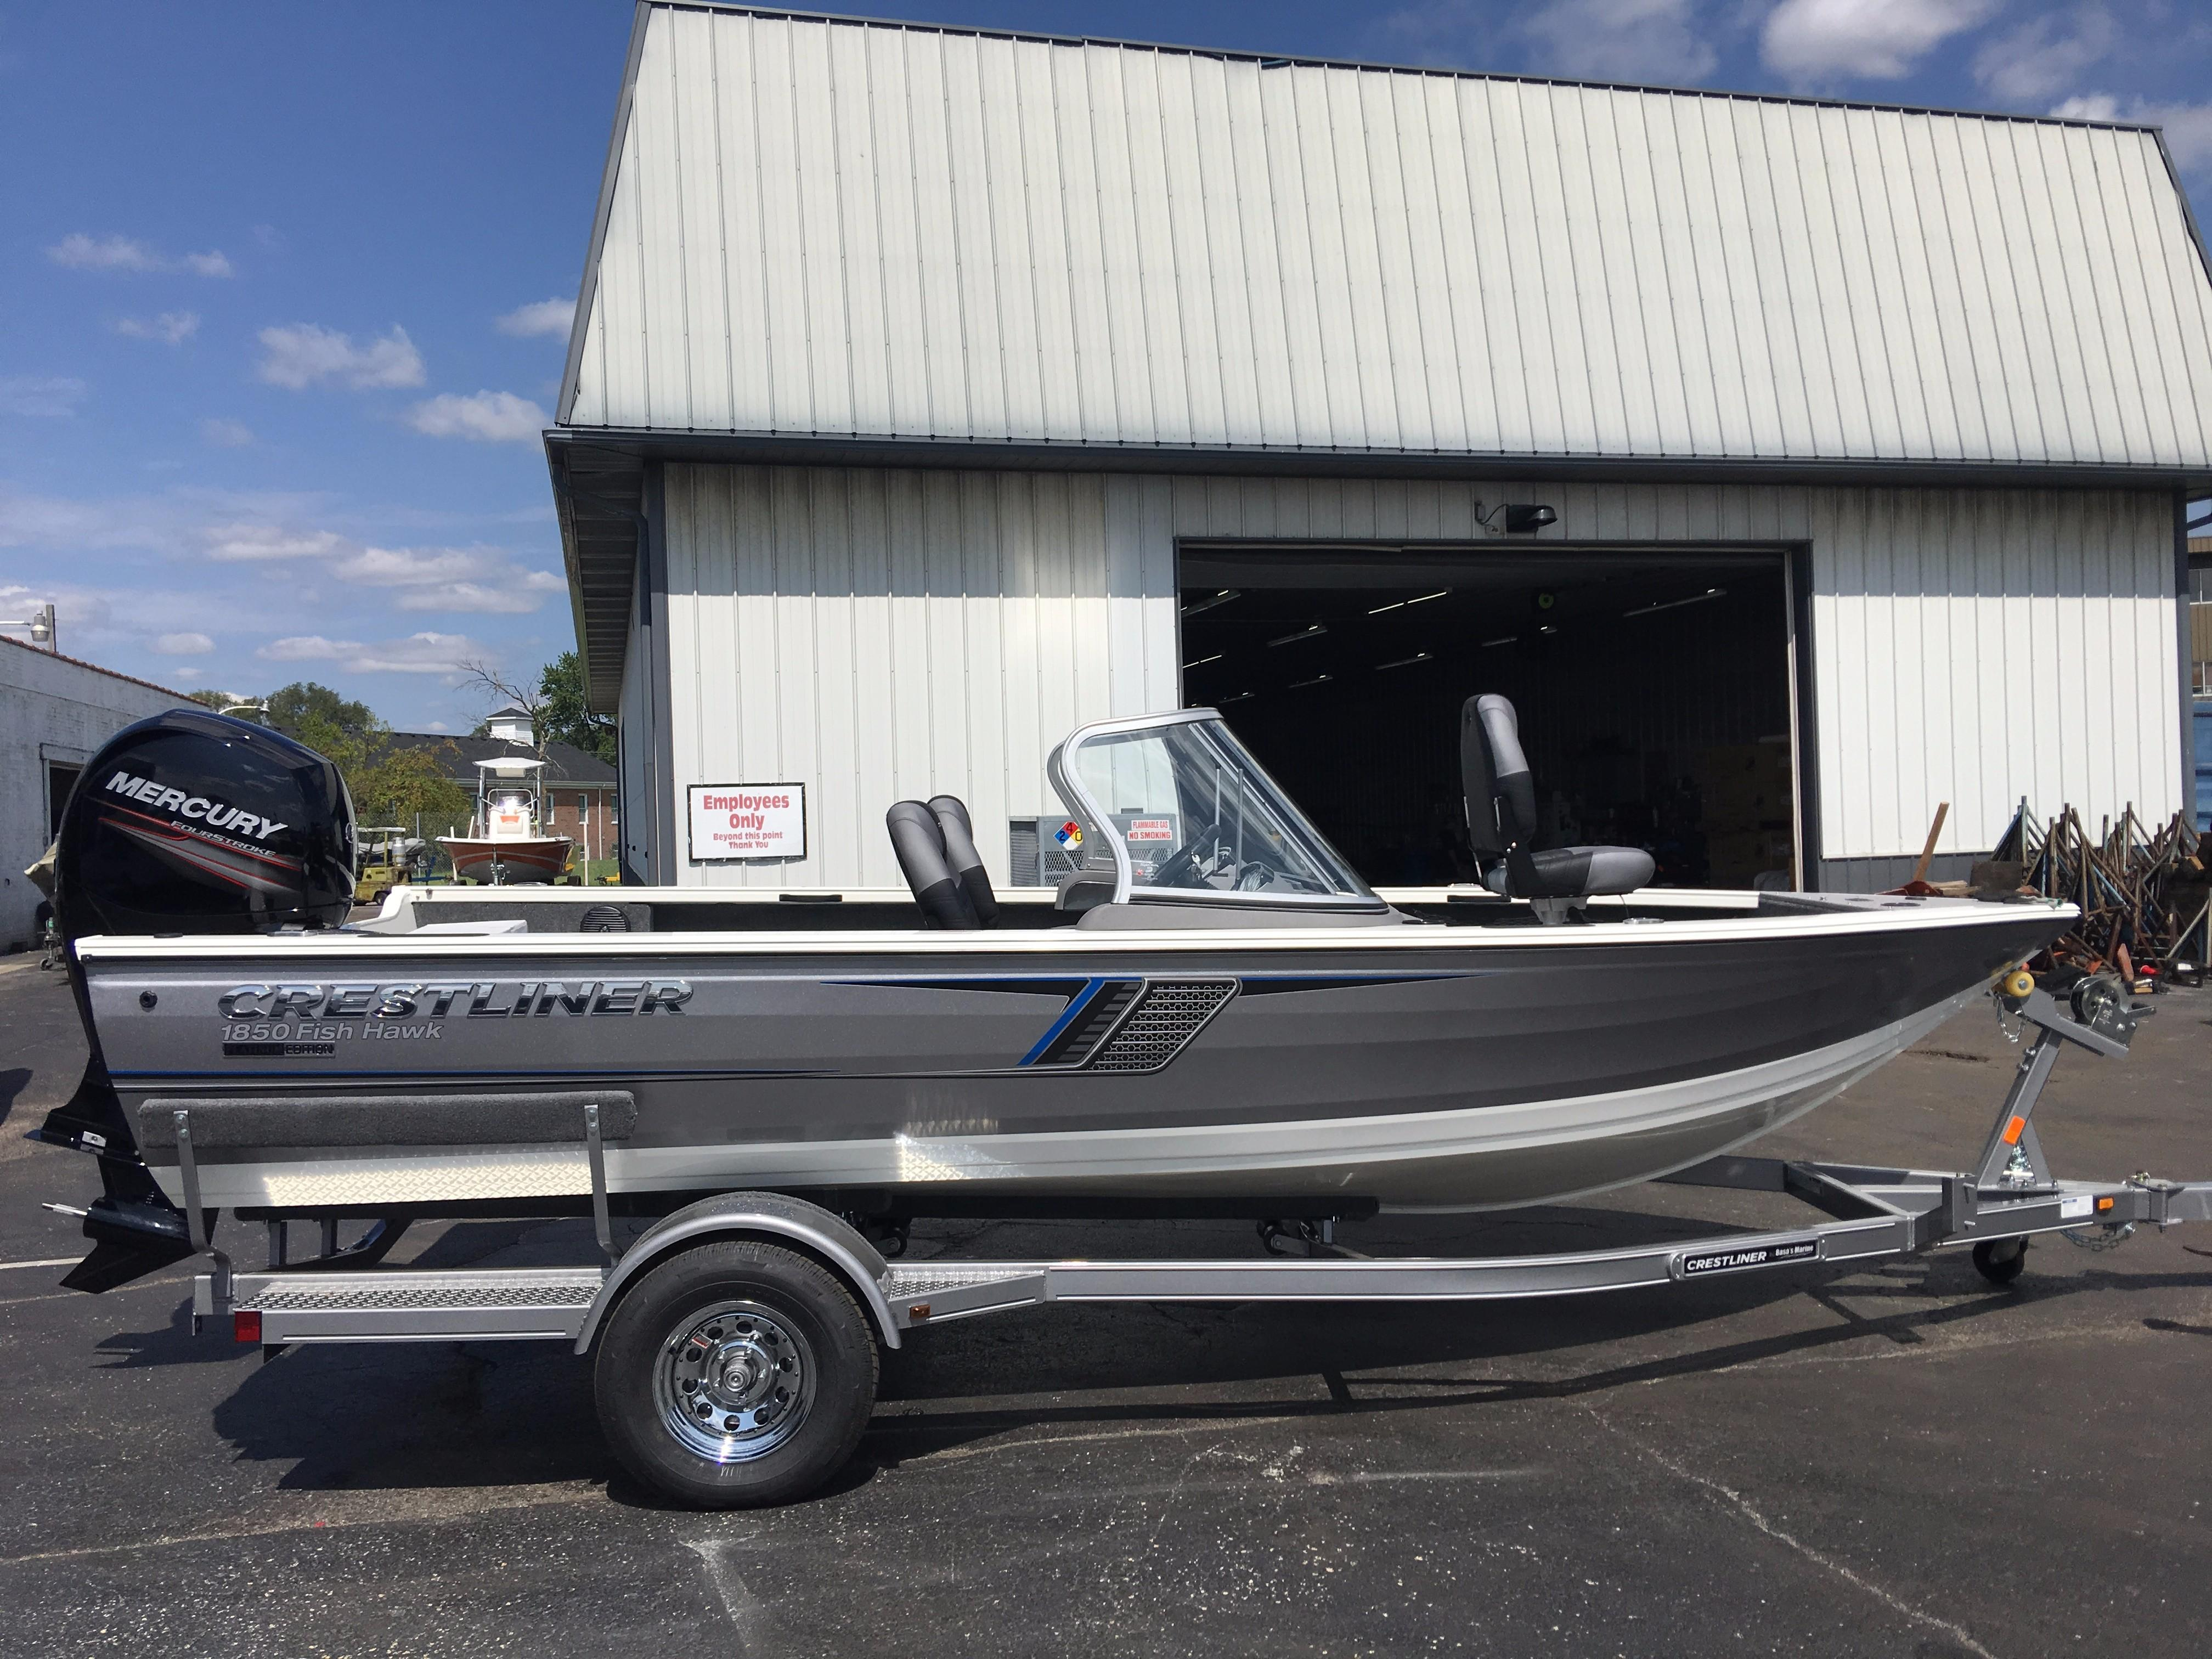 2018 crestliner 1850 fish hawk wt power boat for sale www rh yachtworld com Trailer Wiring Harness Ford Wiring Harness Kits